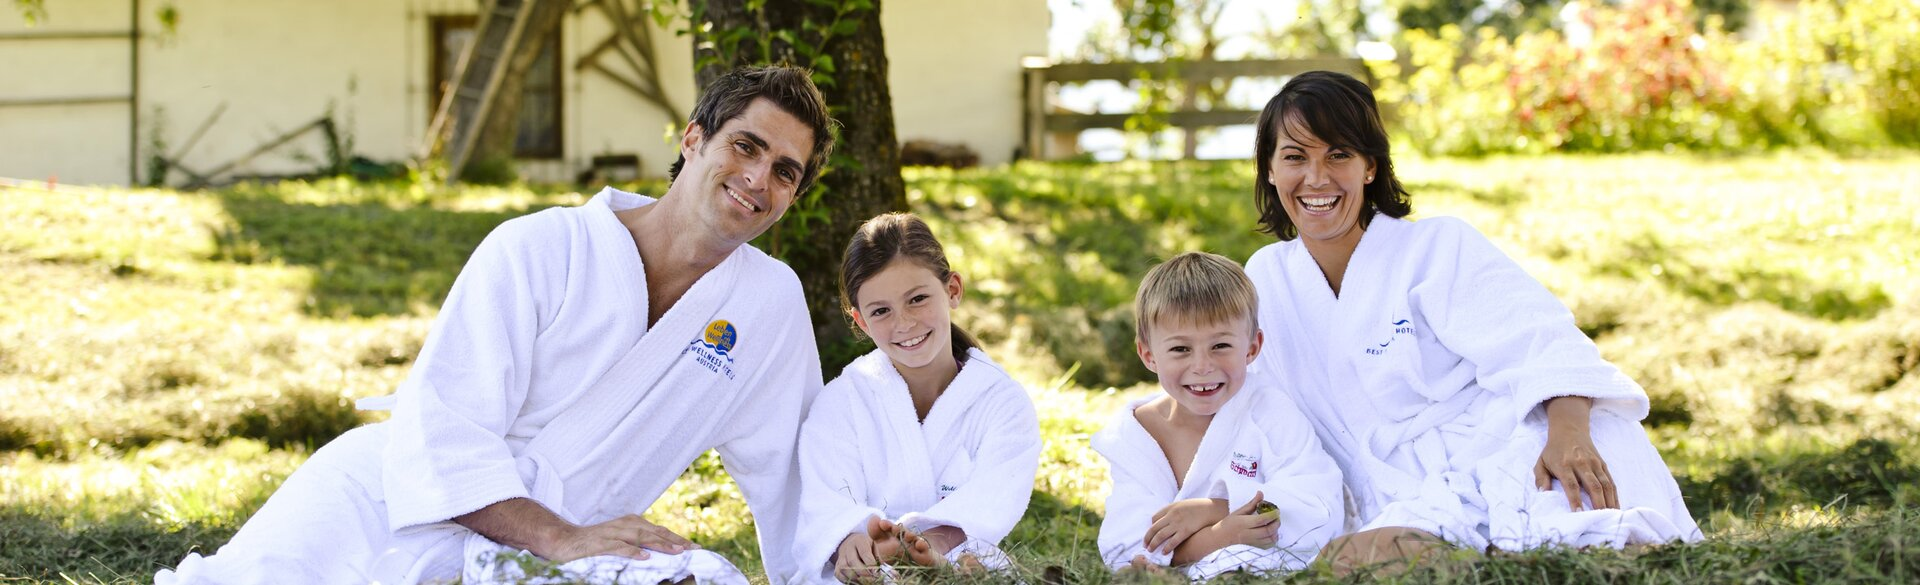 Familie & Wellness | Schönste Wellnesshotels